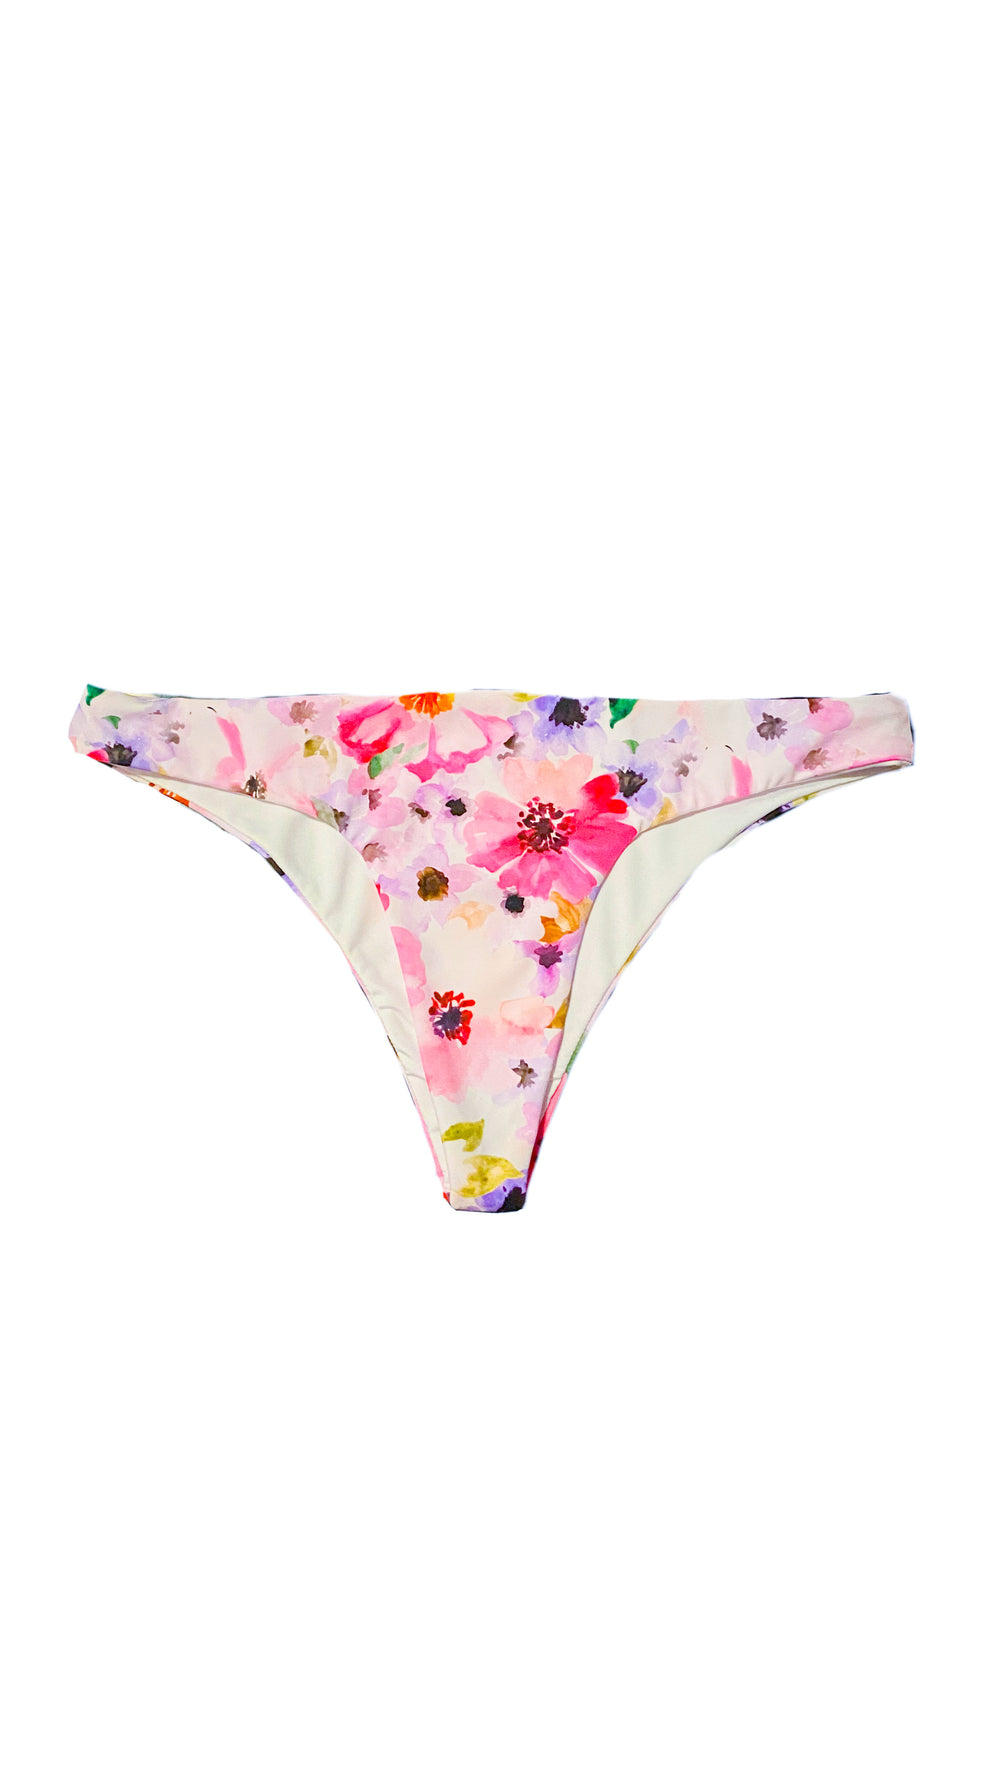 Alaine bottom - floral